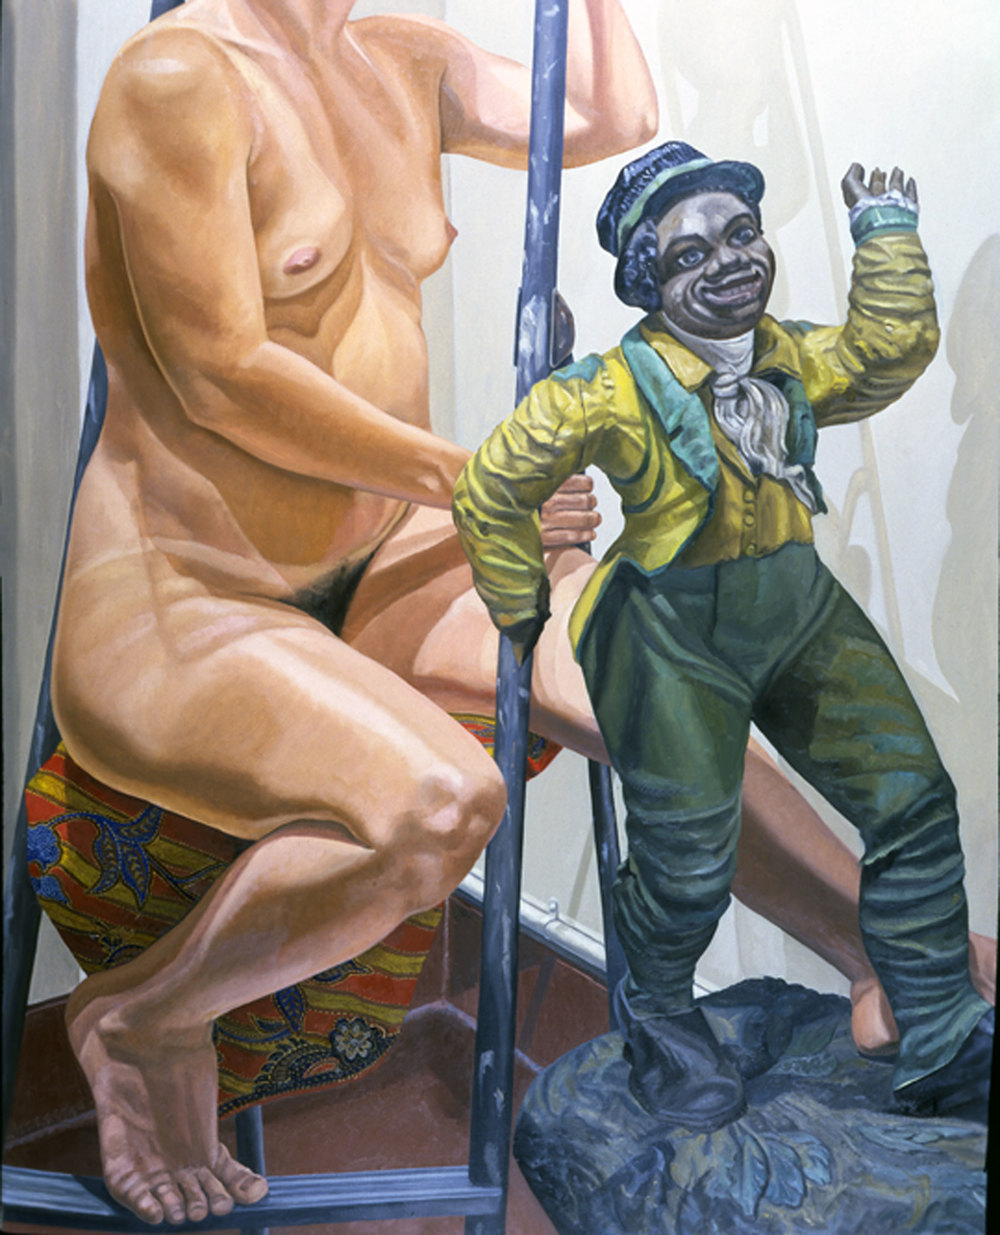 MODEL ON LADDER WITH MINSTREL FIGURES  ,  1986  Oil on canvas   60 x 48 inches